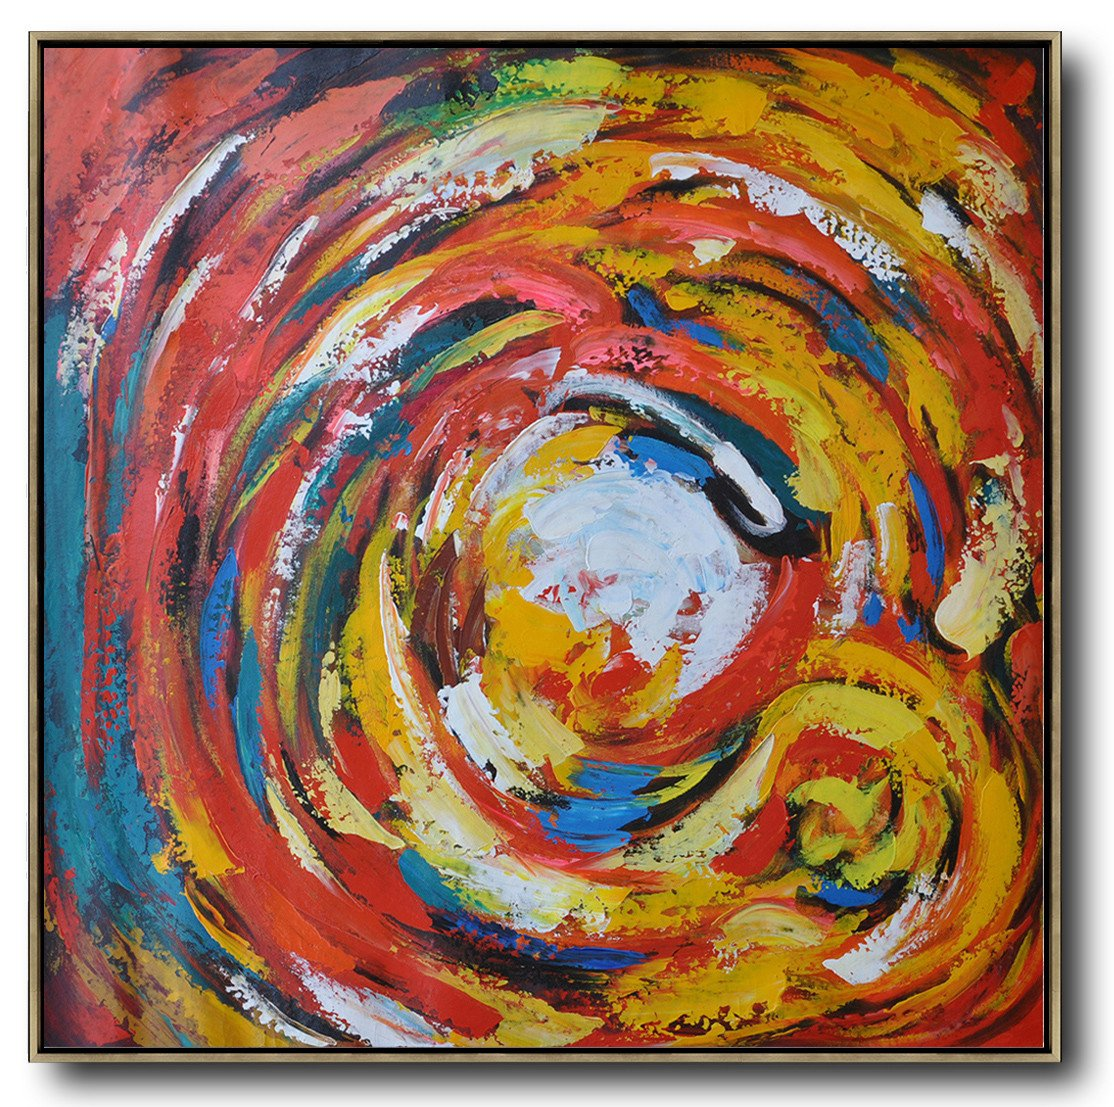 Large Abstract Painting,Oversized Contemporary Art,Oversized Canvas Art,Red,White,Yellow,Blue.etc